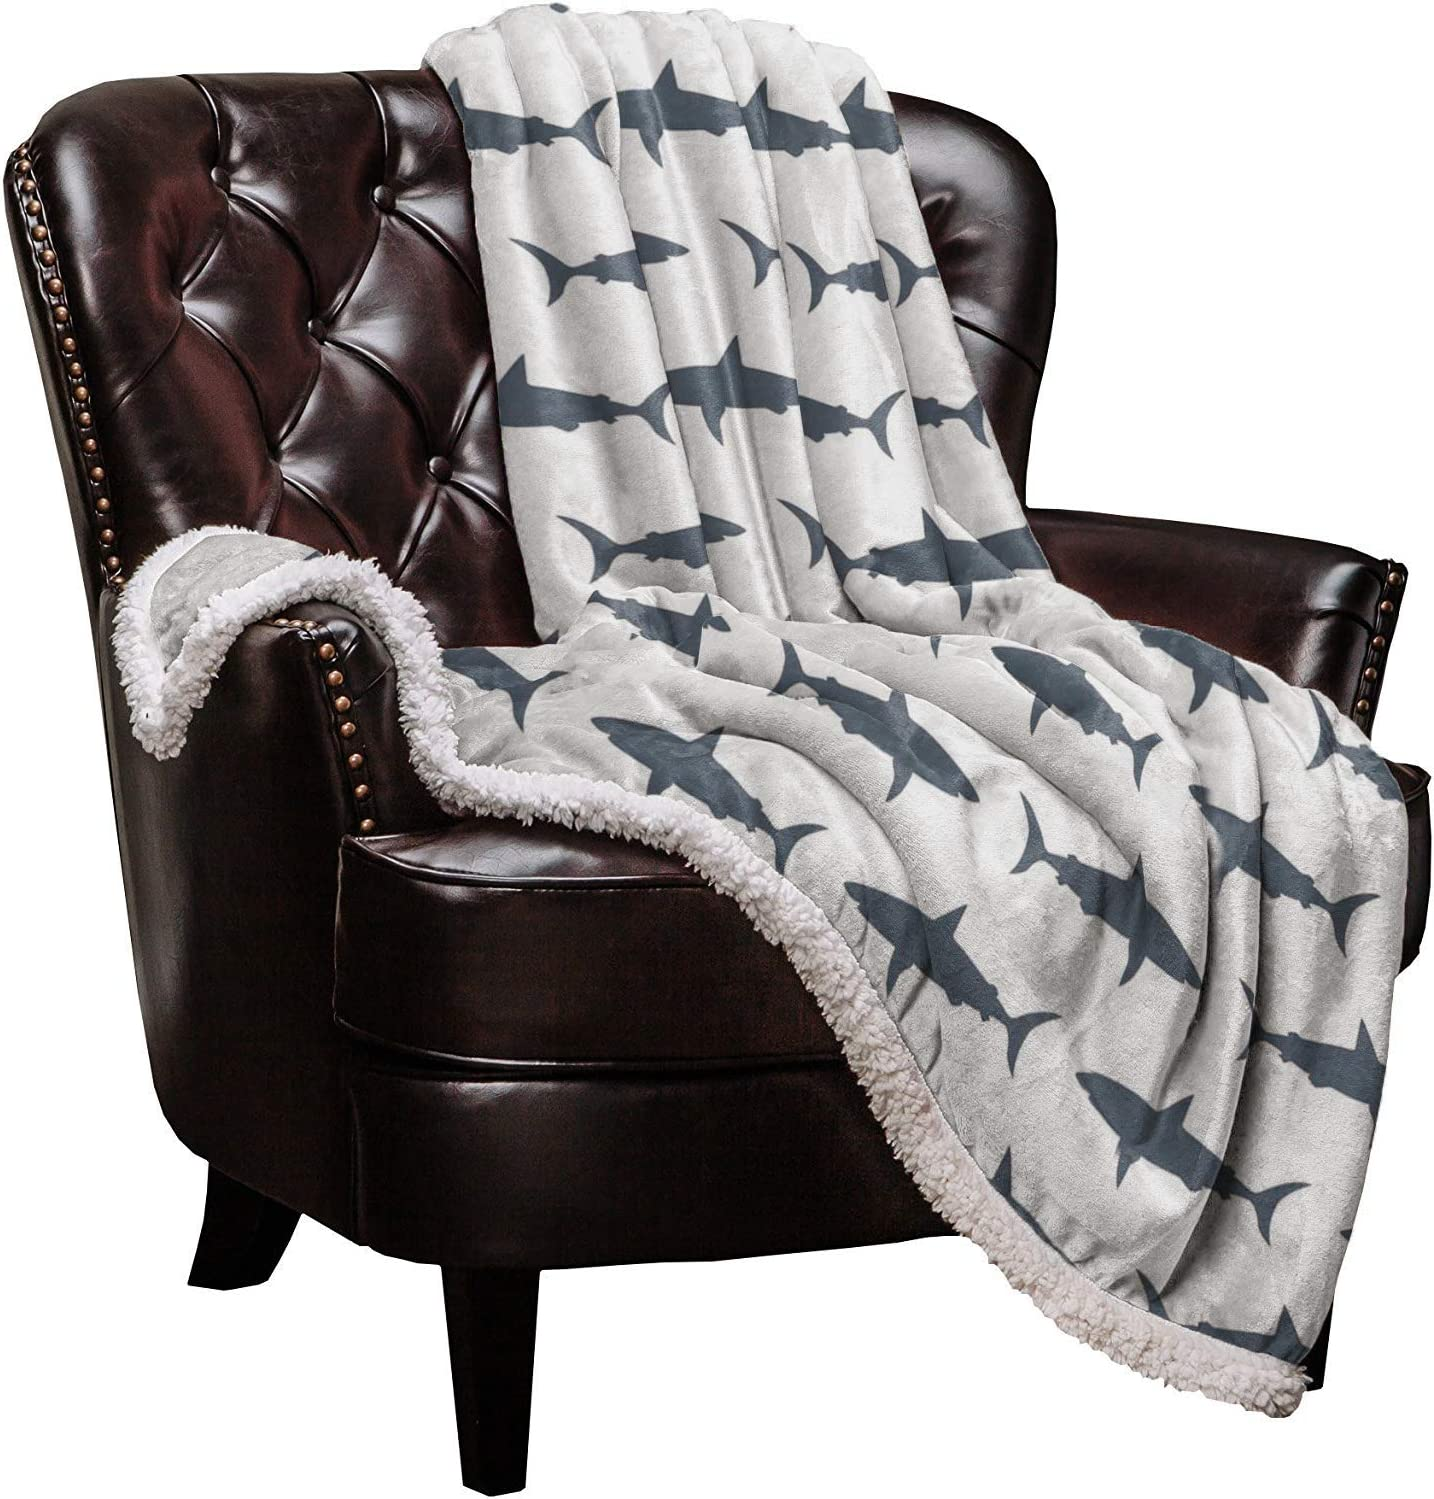 """Roses Garden Sharks Sherpa Fleece Blanket,Sharks Silhouettes Bed Blanket Soft Cozy Luxury Blanket 40""""x50"""",Fuzzy Thick Reversible Super Warm Fluffy Plush Microfiber Throw Blanket for Couch"""